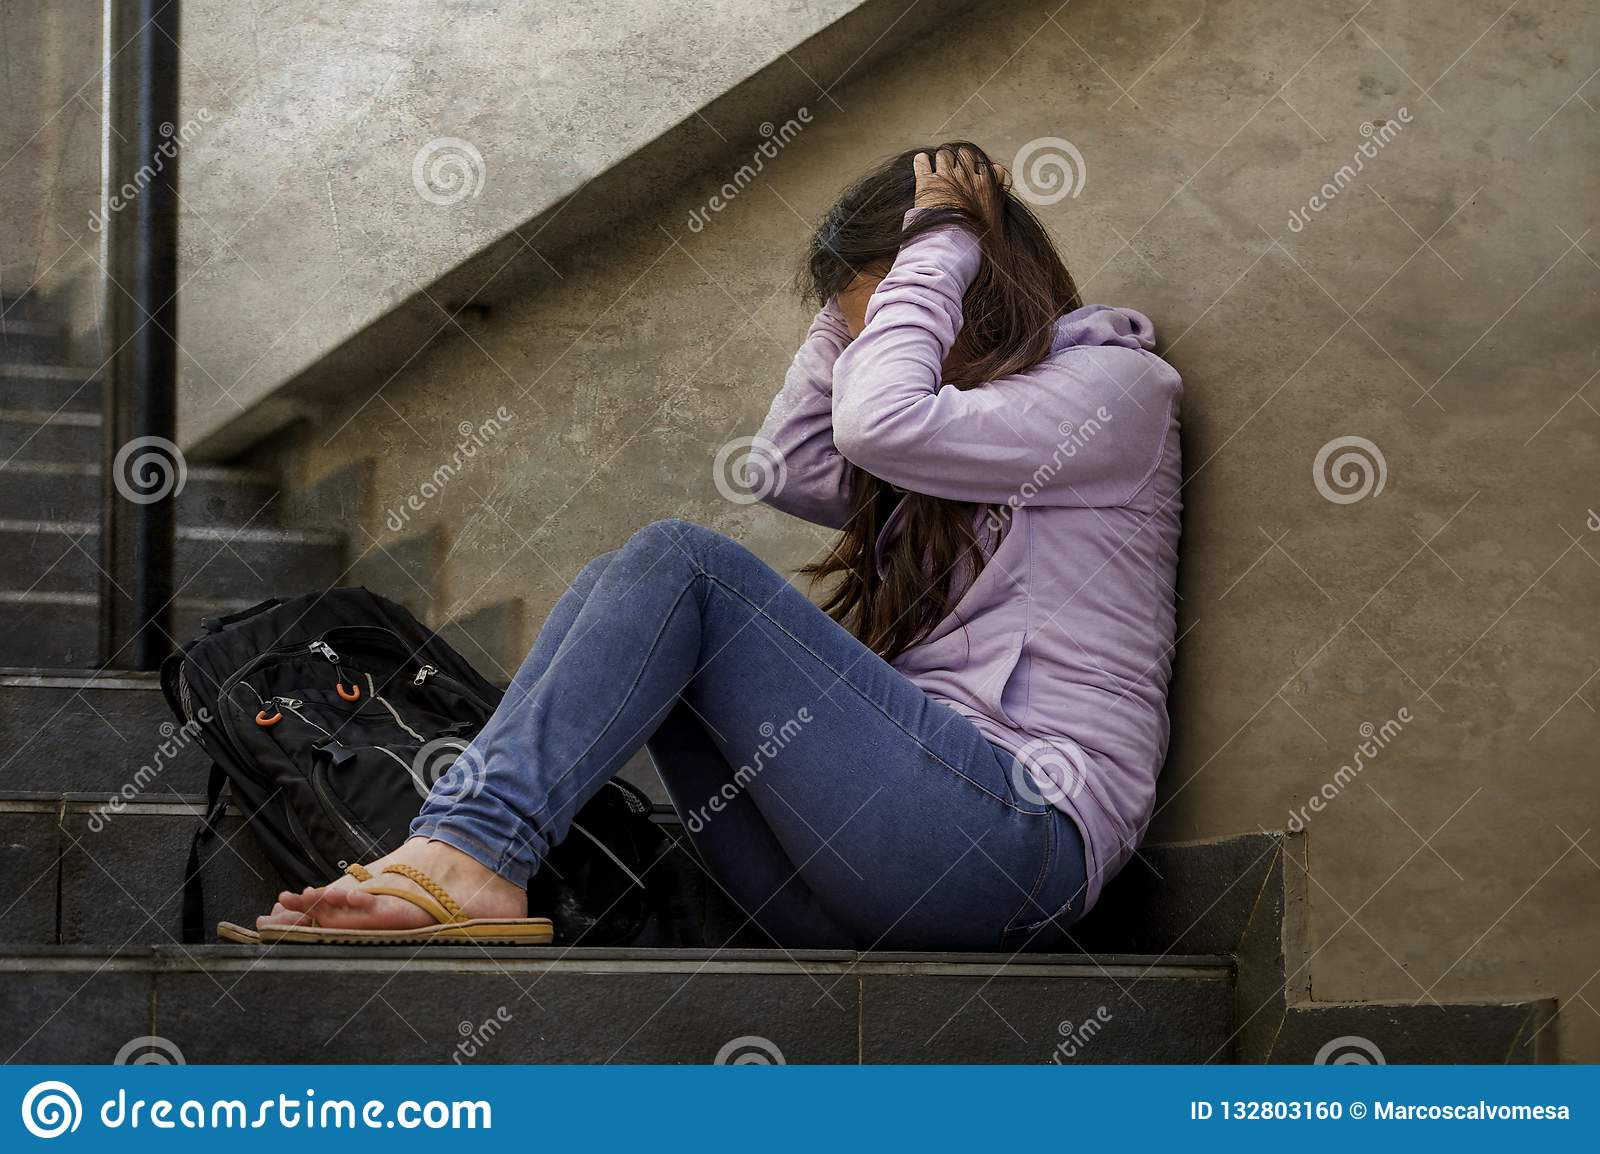 Depressed student woman or bullied teenager girl sitting outdoors on street staircase scared and anxious victim of bullying